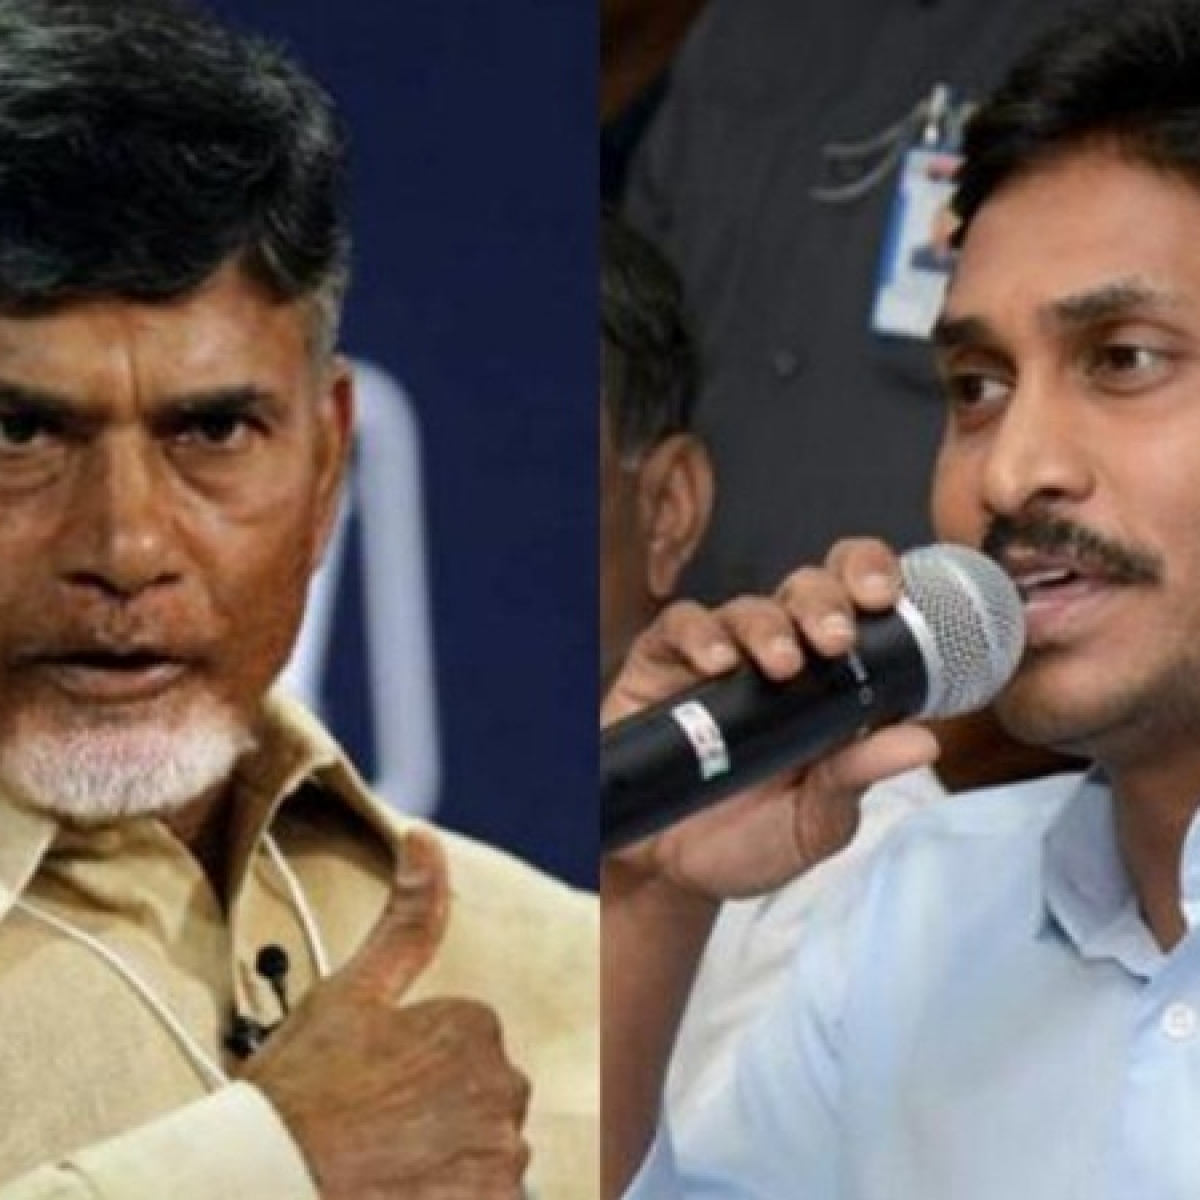 After 'Praja Vedika', Jagan Mohan Reddy's government serves notice to Chandrababu Naidu for vacating official residence